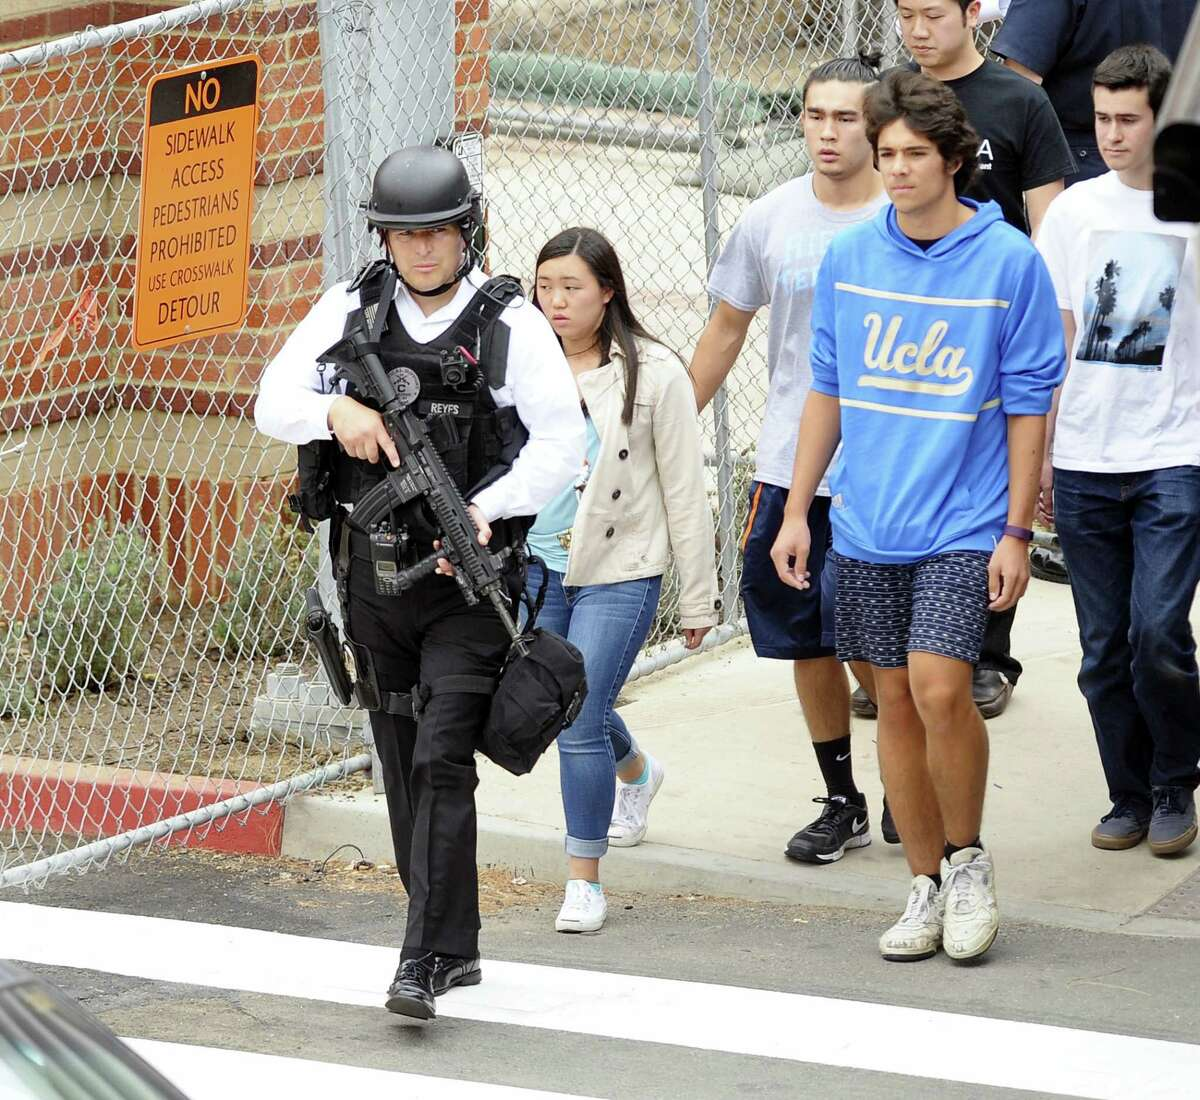 Law enforcement evacuate students away from the scene of a fatal shooting at the University of California, Los Angeles, Wednesday, June 1, 2016, in Los Angeles.